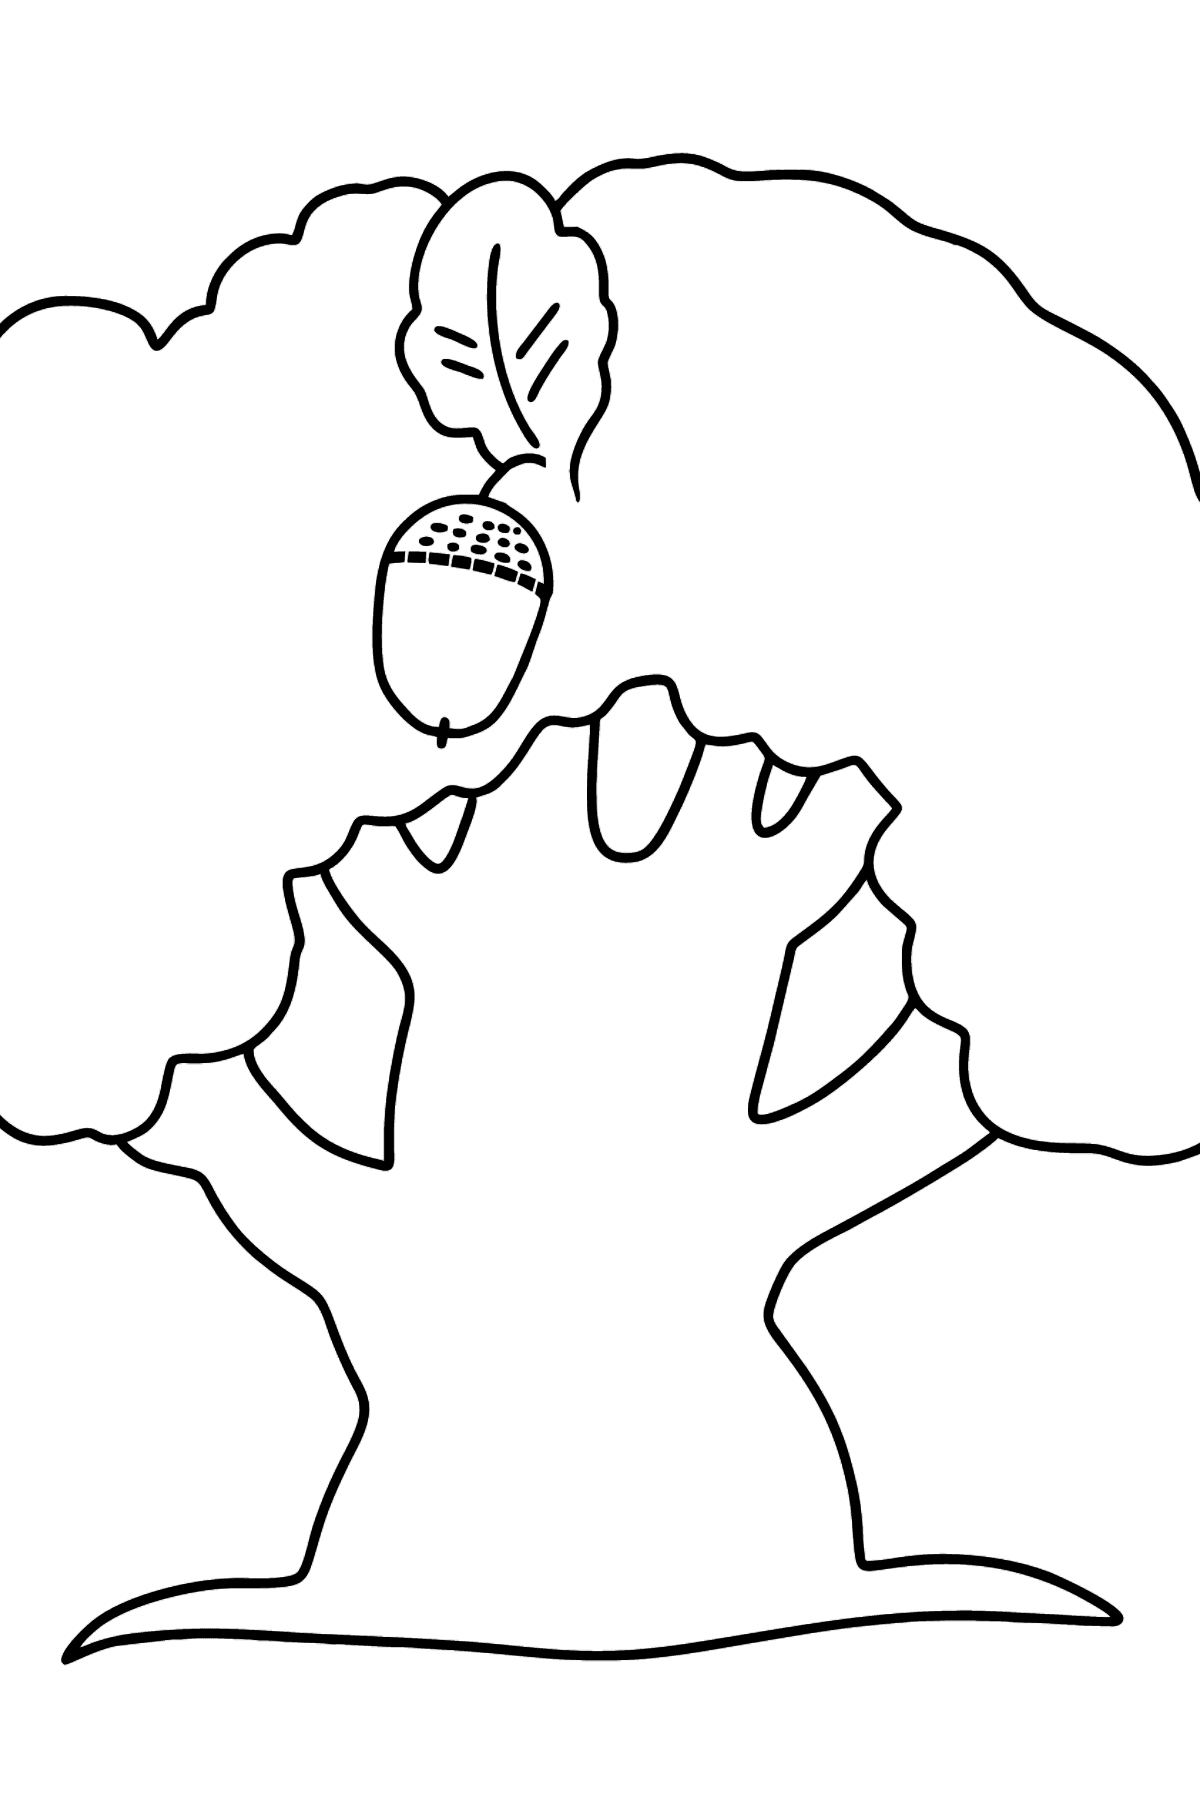 Oak coloring page - Simple  - Coloring Pages for Kids